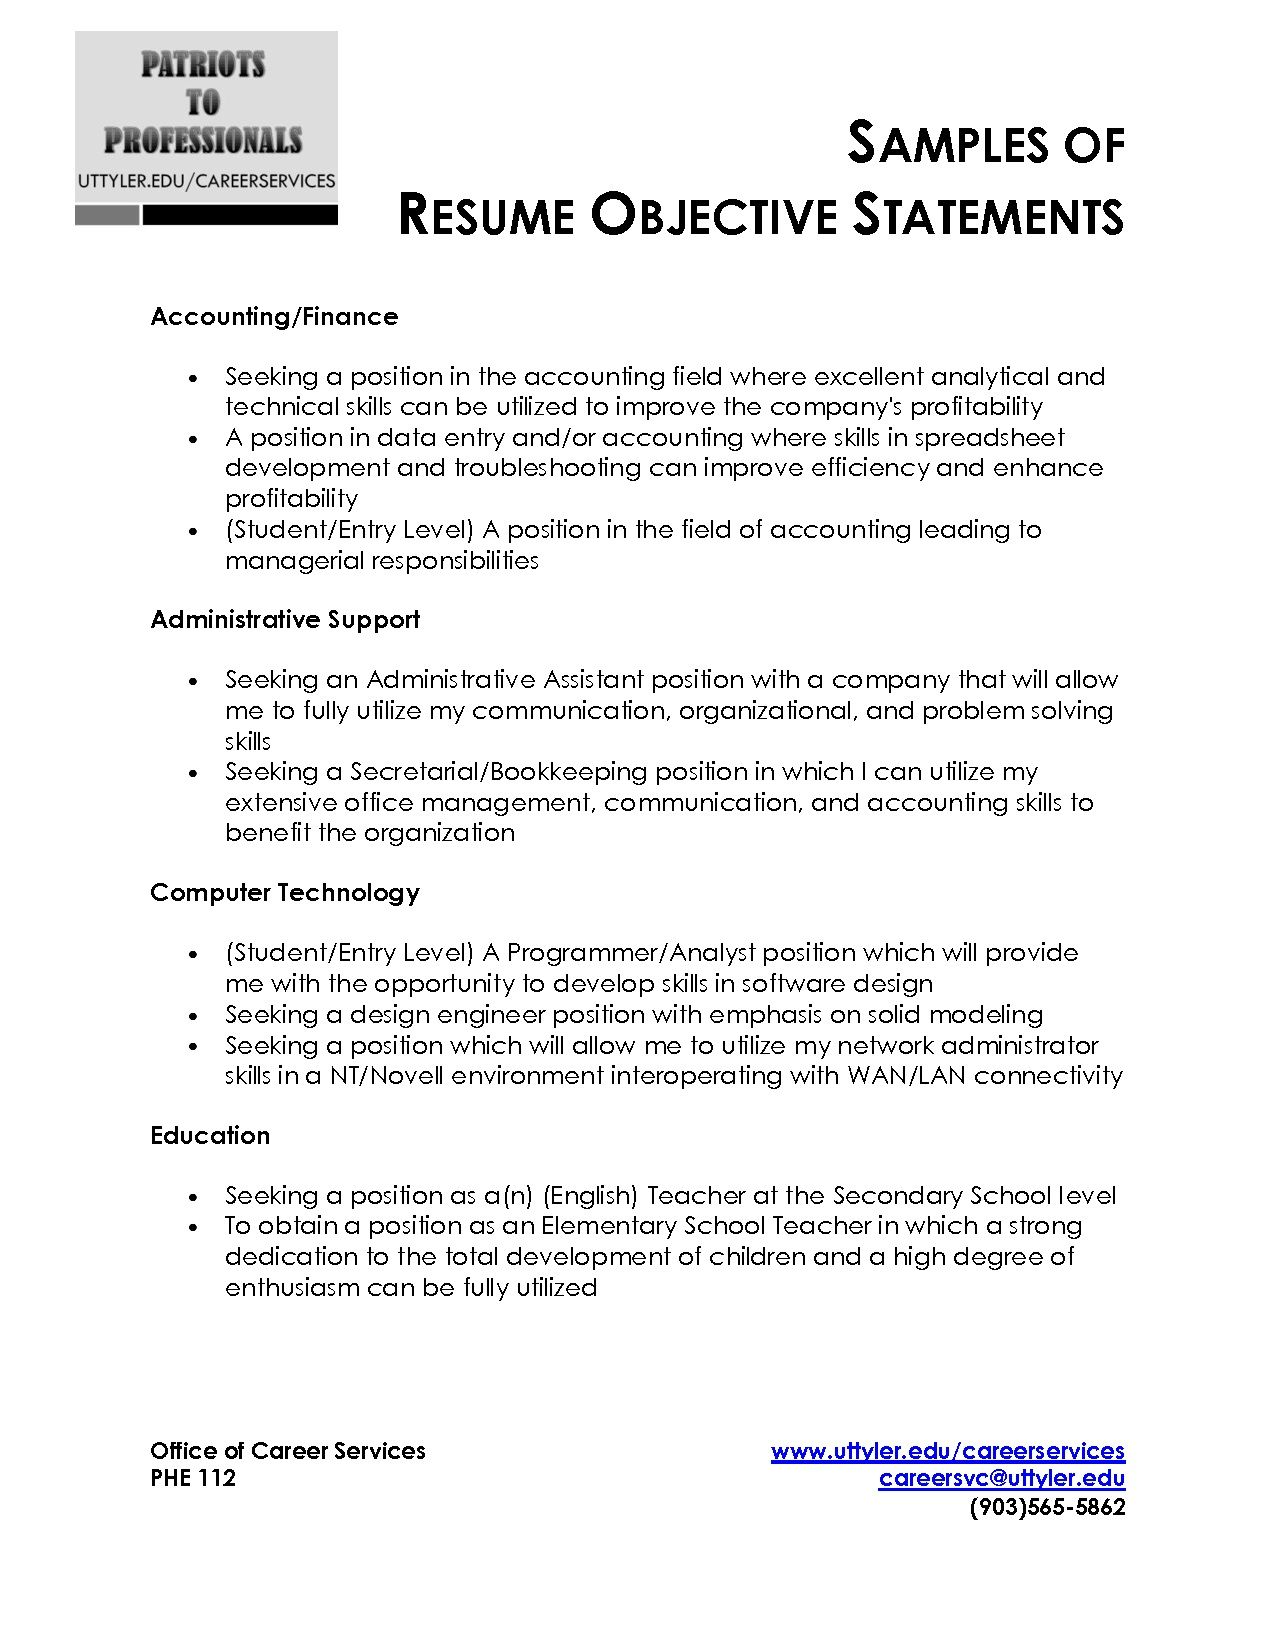 Pin By Hnnhdne On Resume Cover Letter